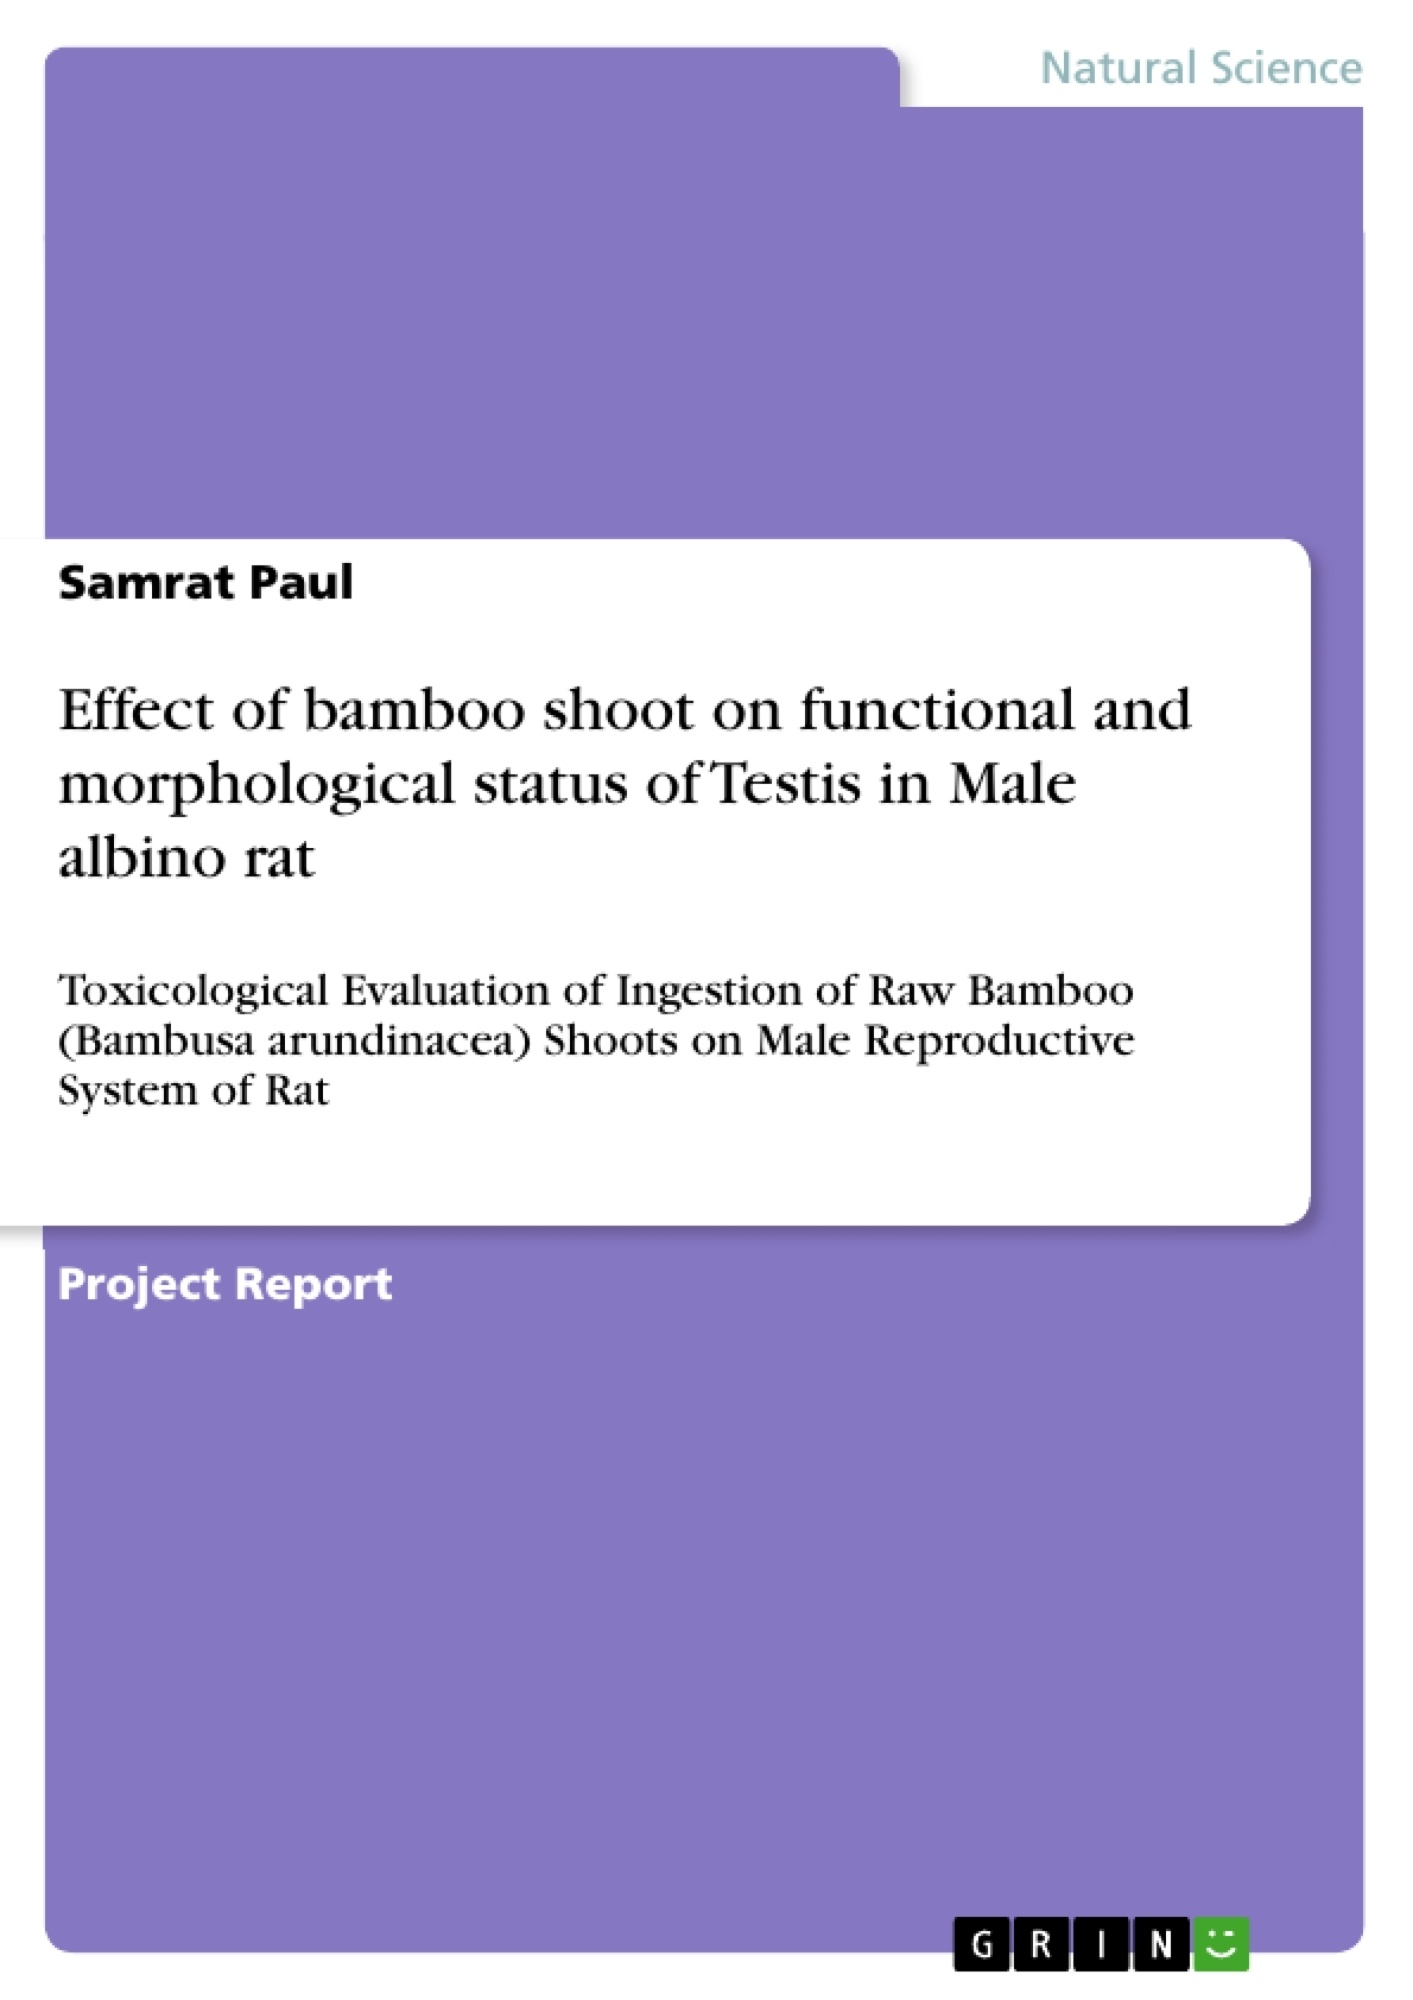 Title: Effect of bamboo shoot on functional and morphological status of Testis in Male albino rat